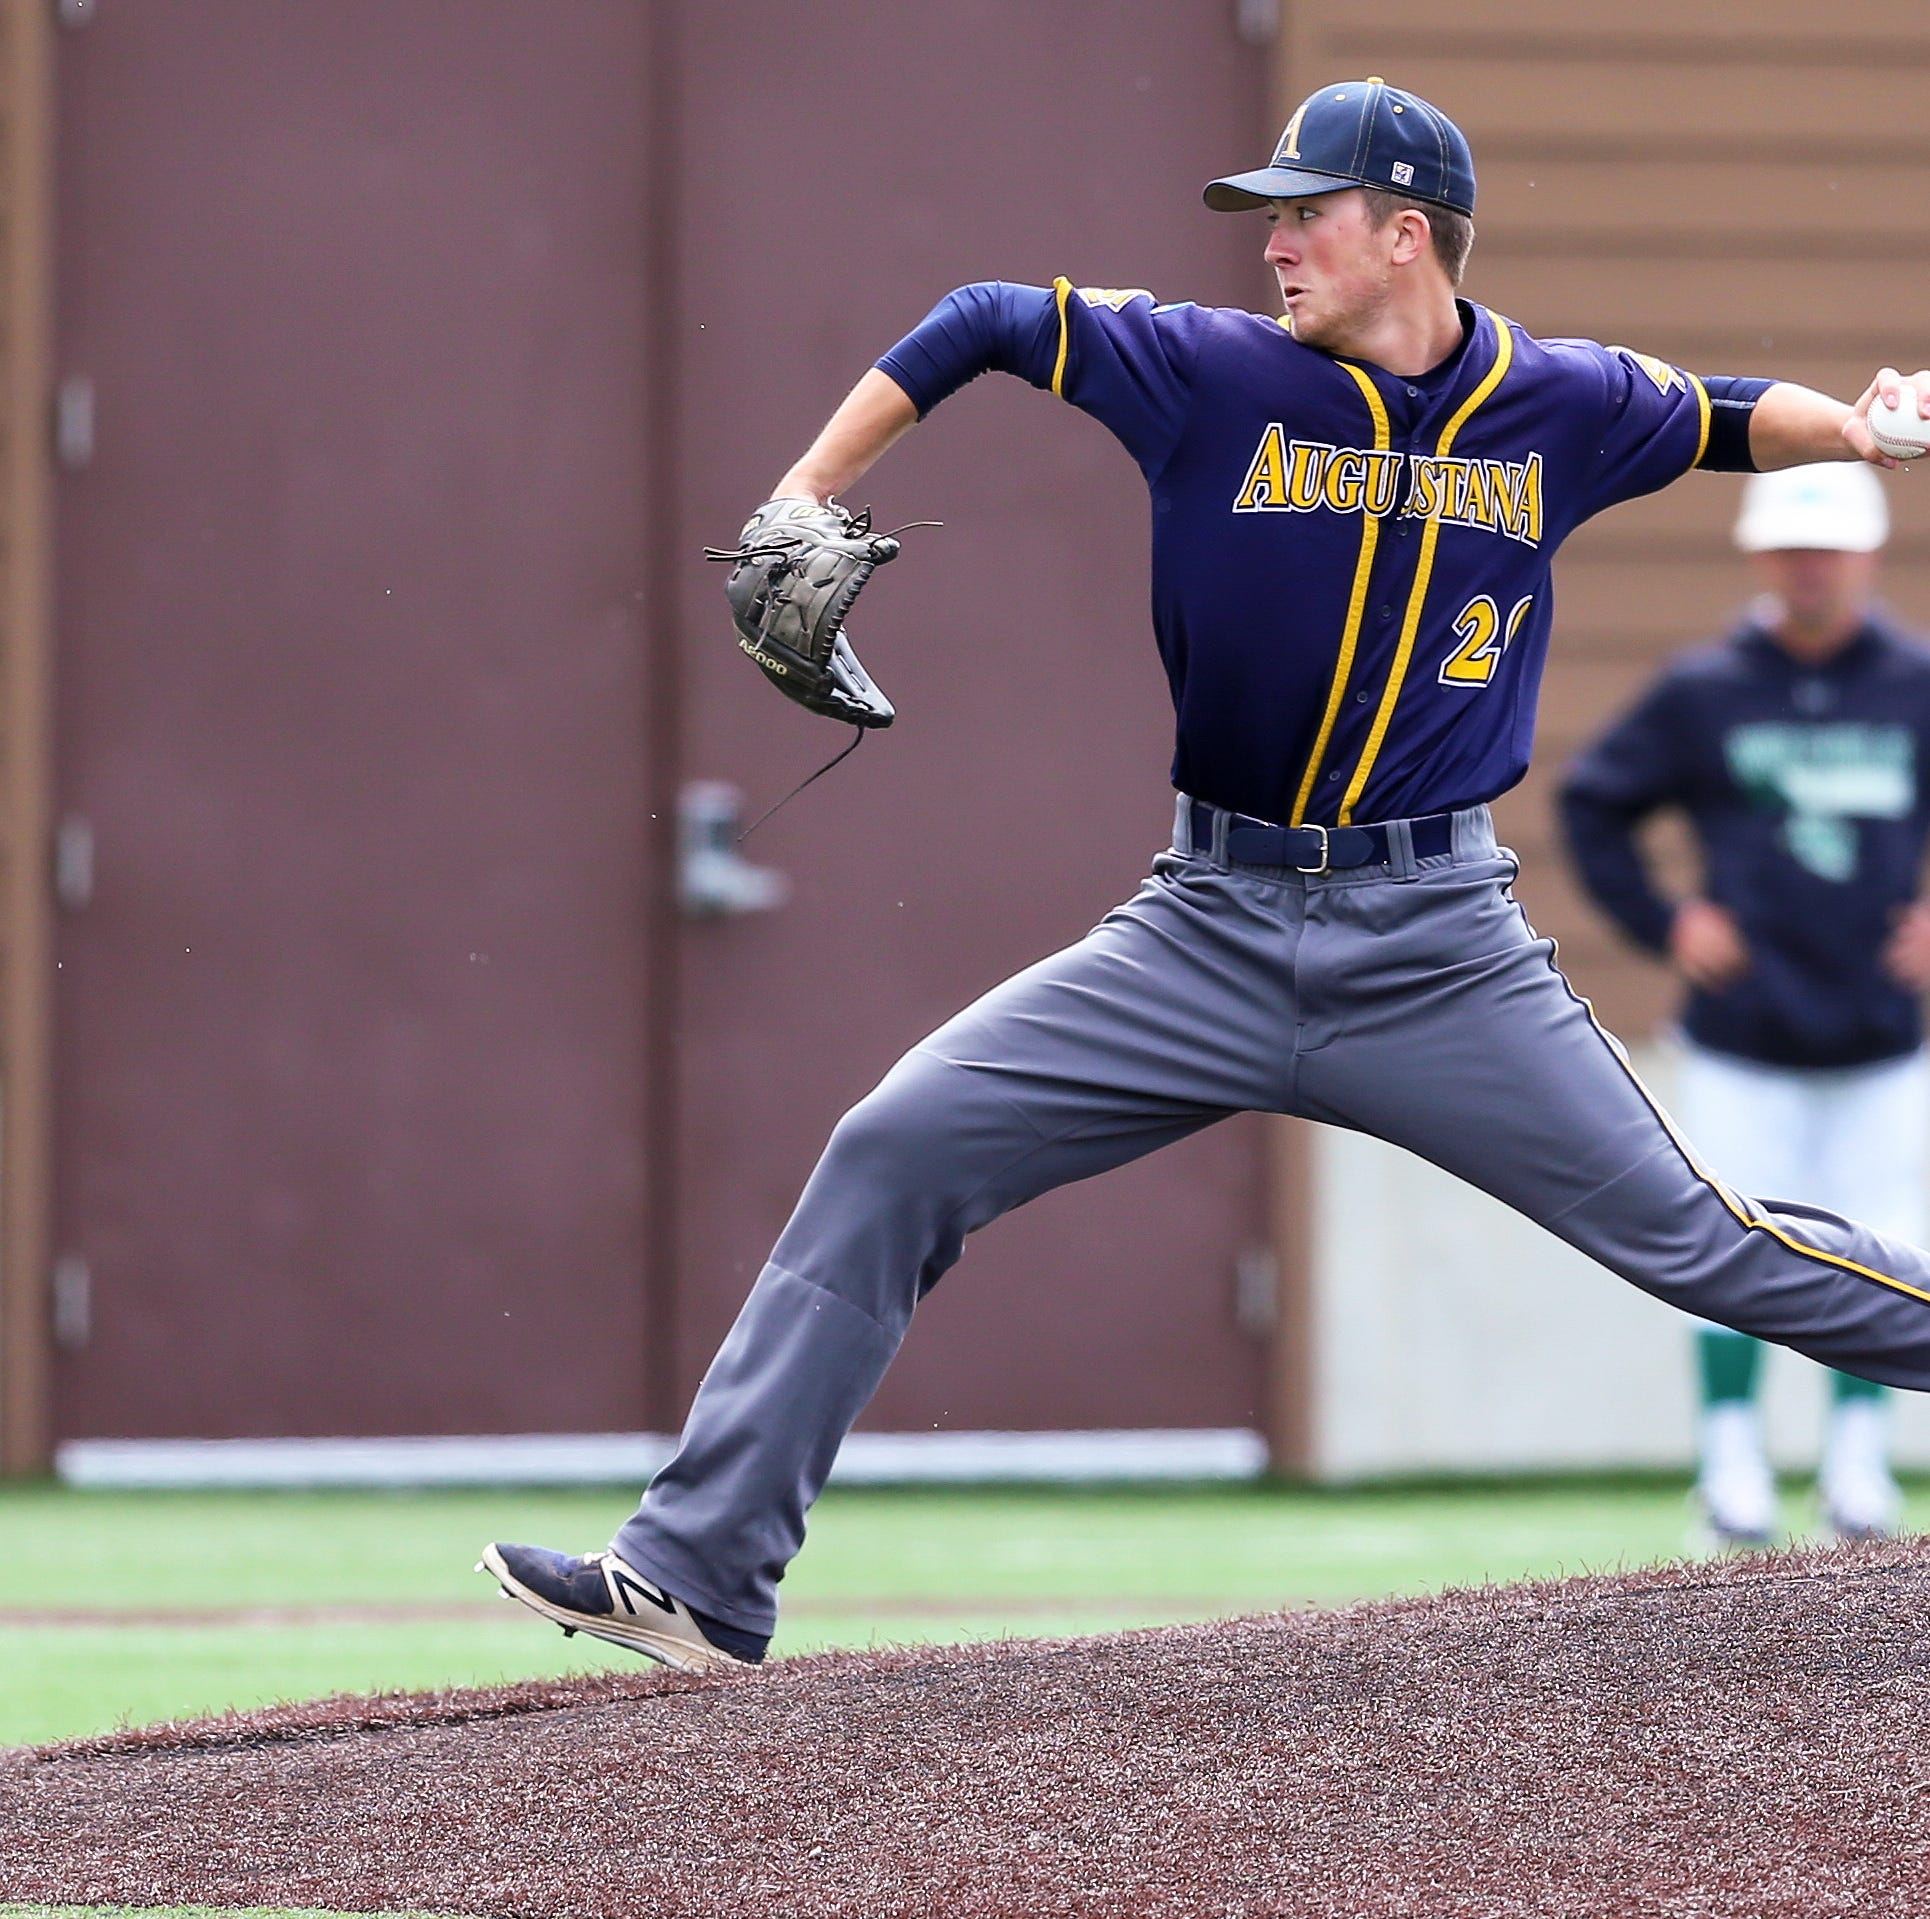 Augustana baseball keeps rolling, will host Super Regional